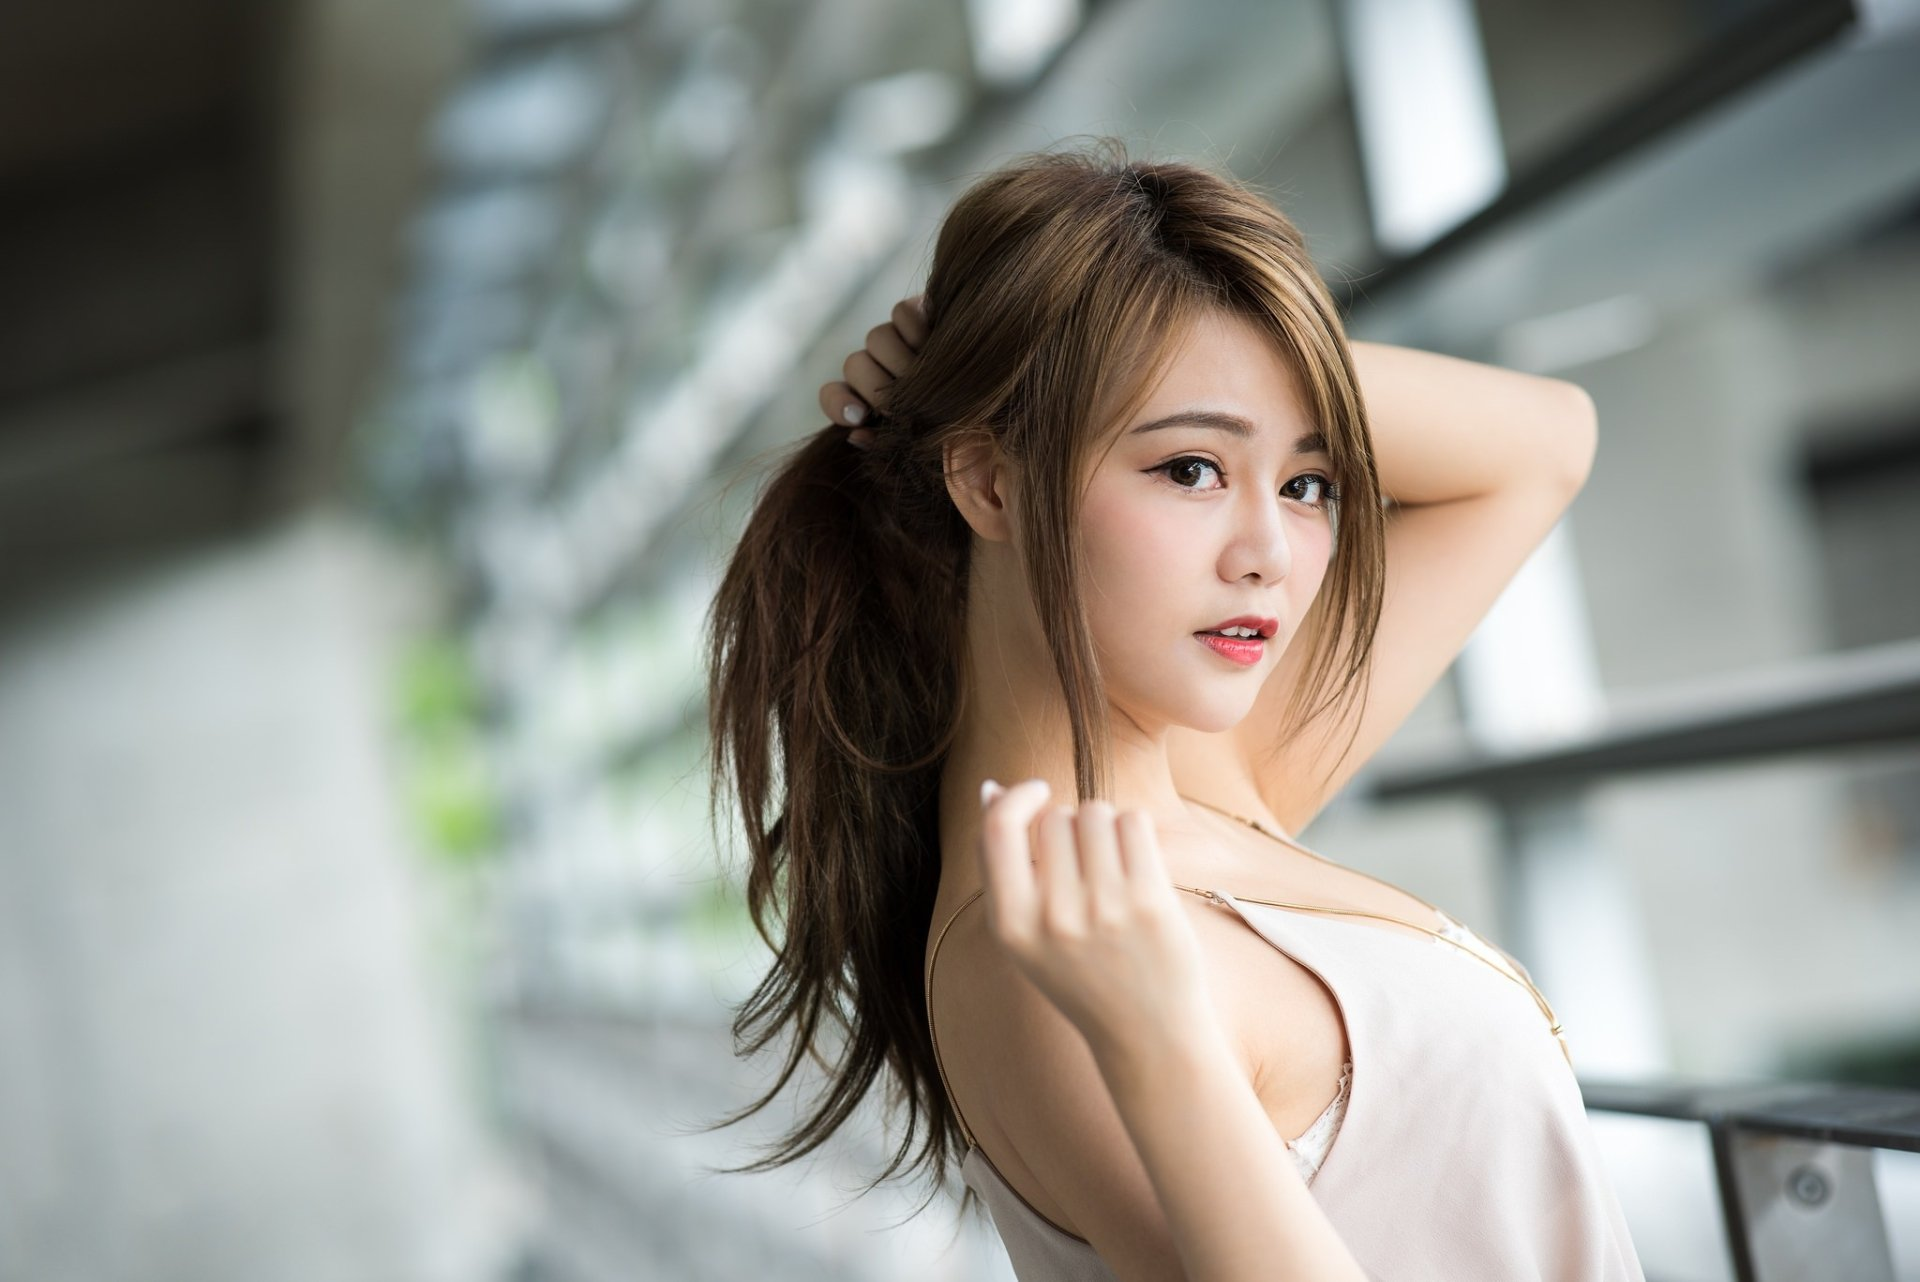 Wallpapers ID:881022